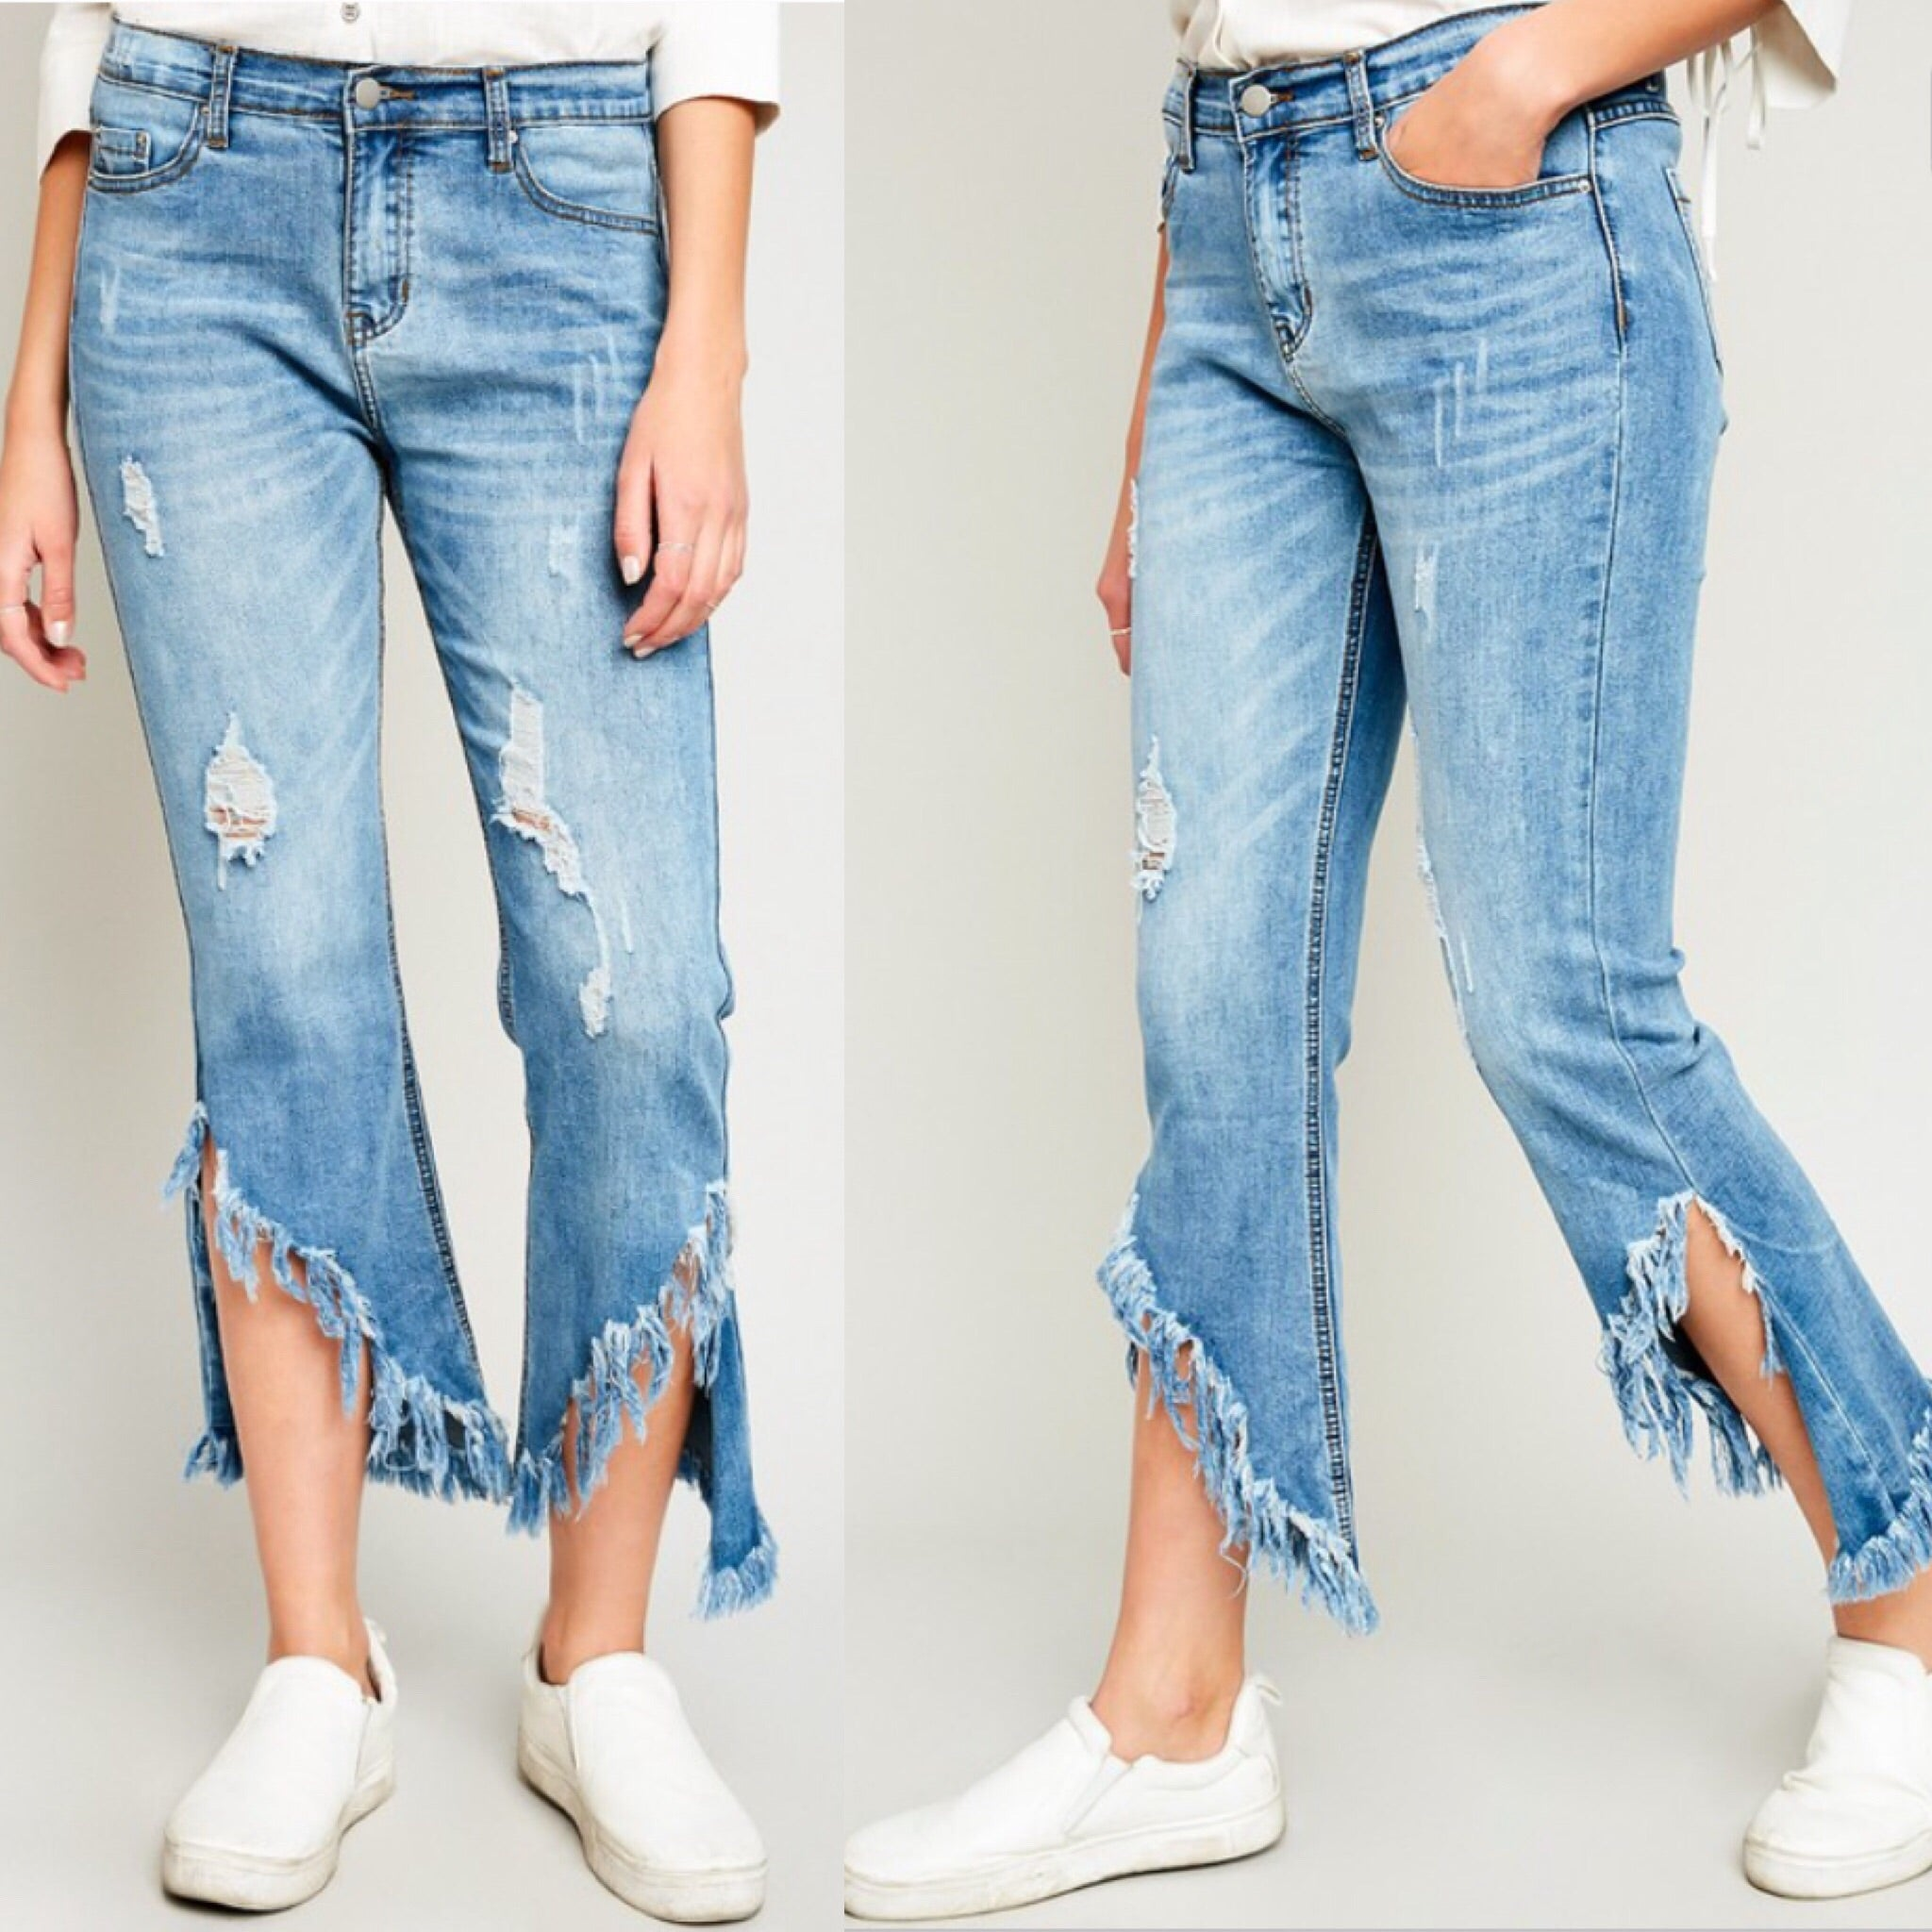 'Nomad' Max Frayed Crop Jeans - S LEFT!